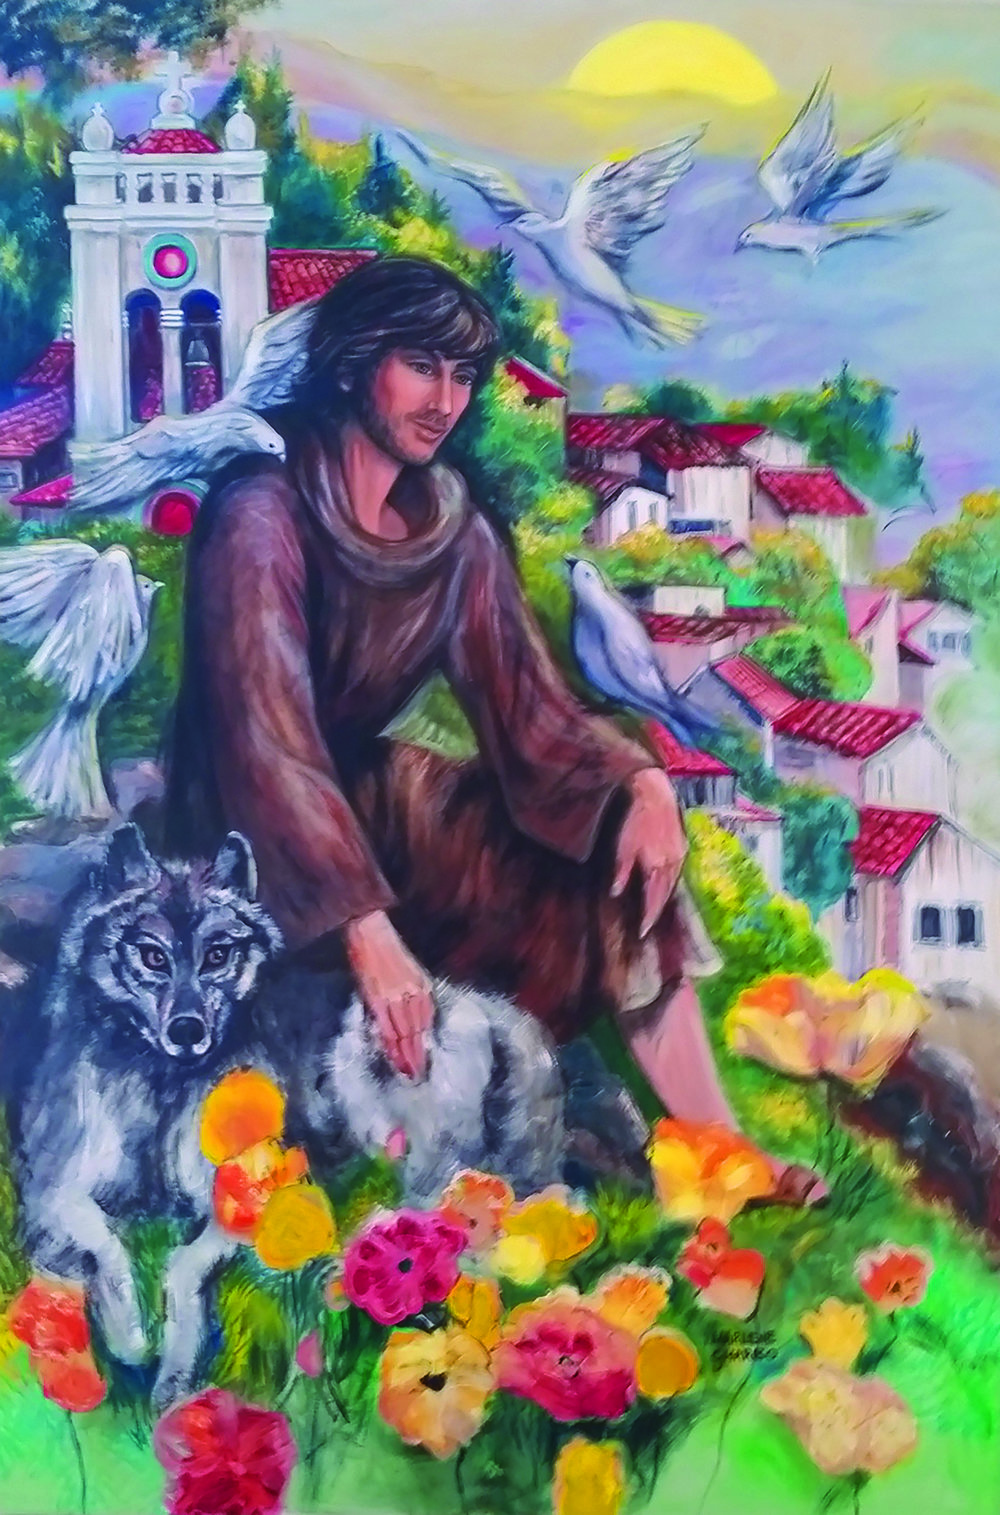 Painting by Marlene Gharbo for St. Bridget Catholic Church, Mesa, AZ